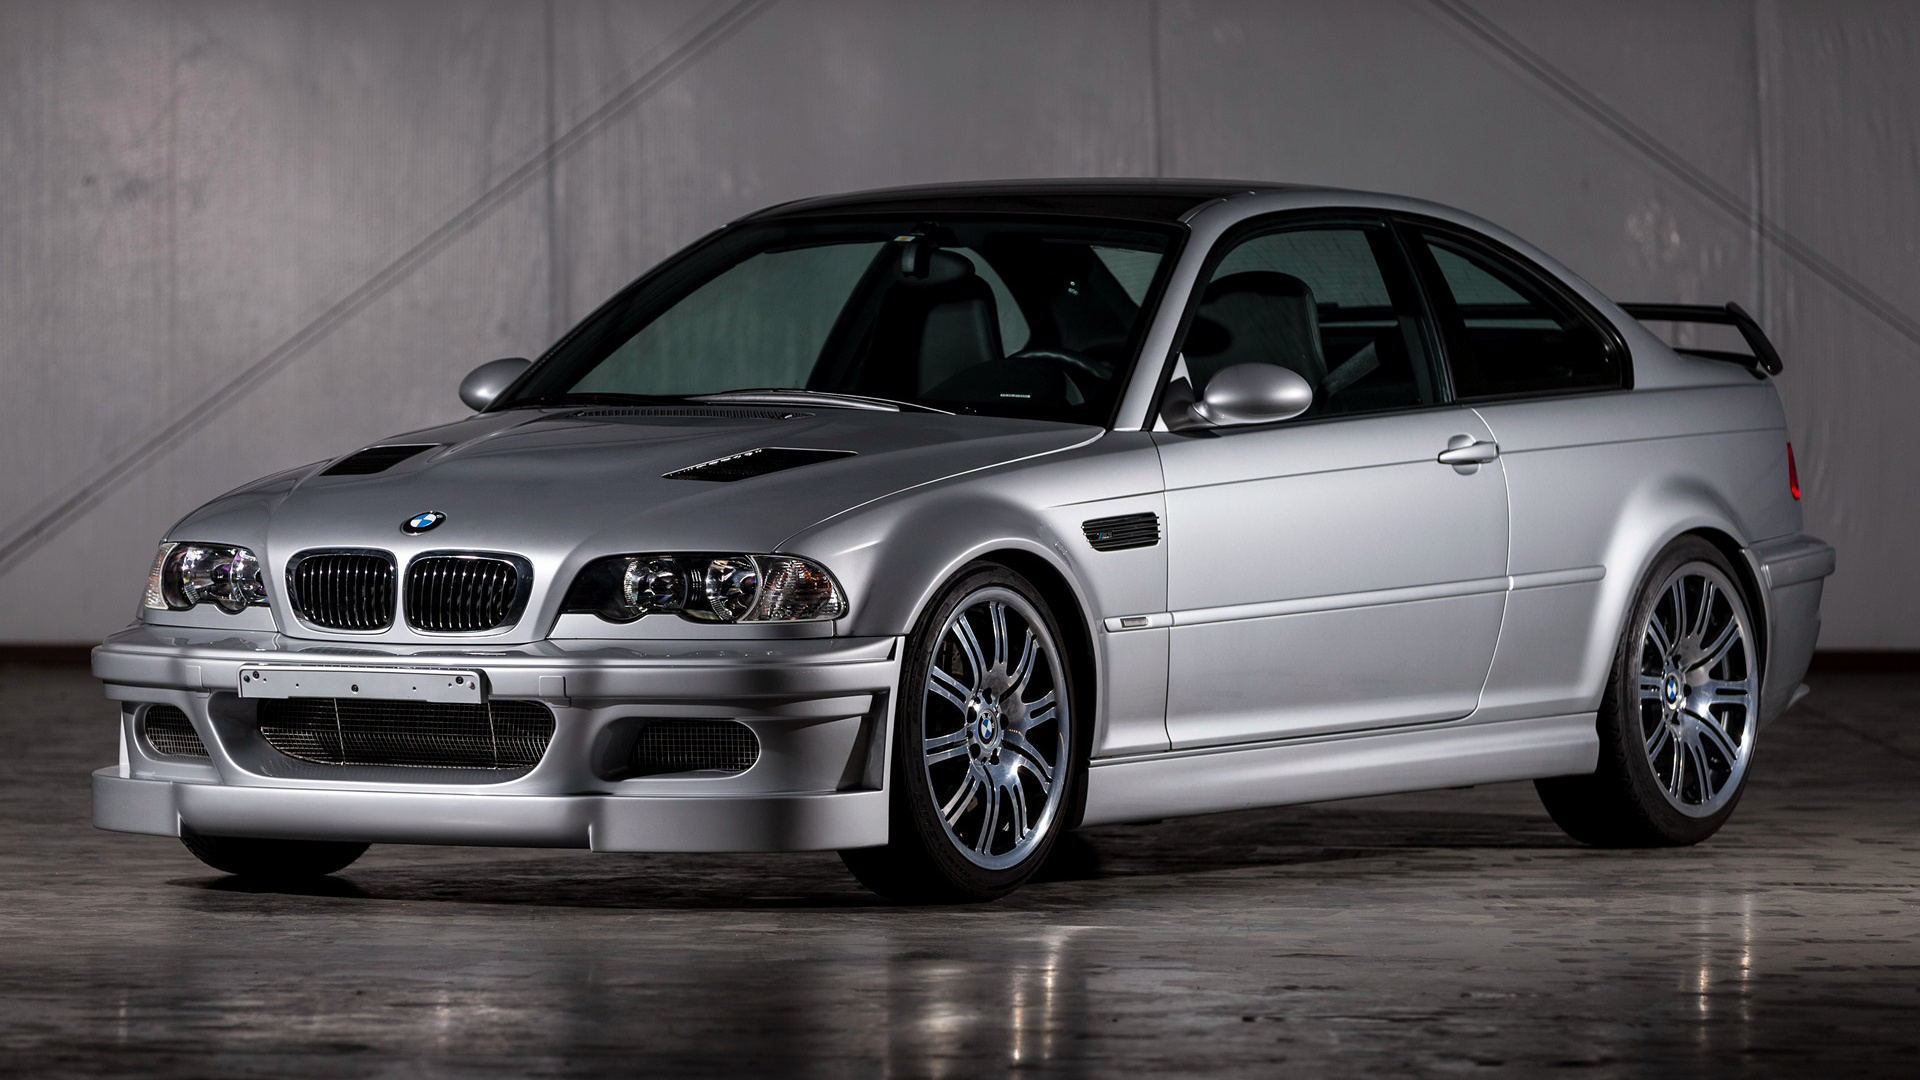 bmw m3 gtr road version 2001 wallpapers and hd images. Black Bedroom Furniture Sets. Home Design Ideas